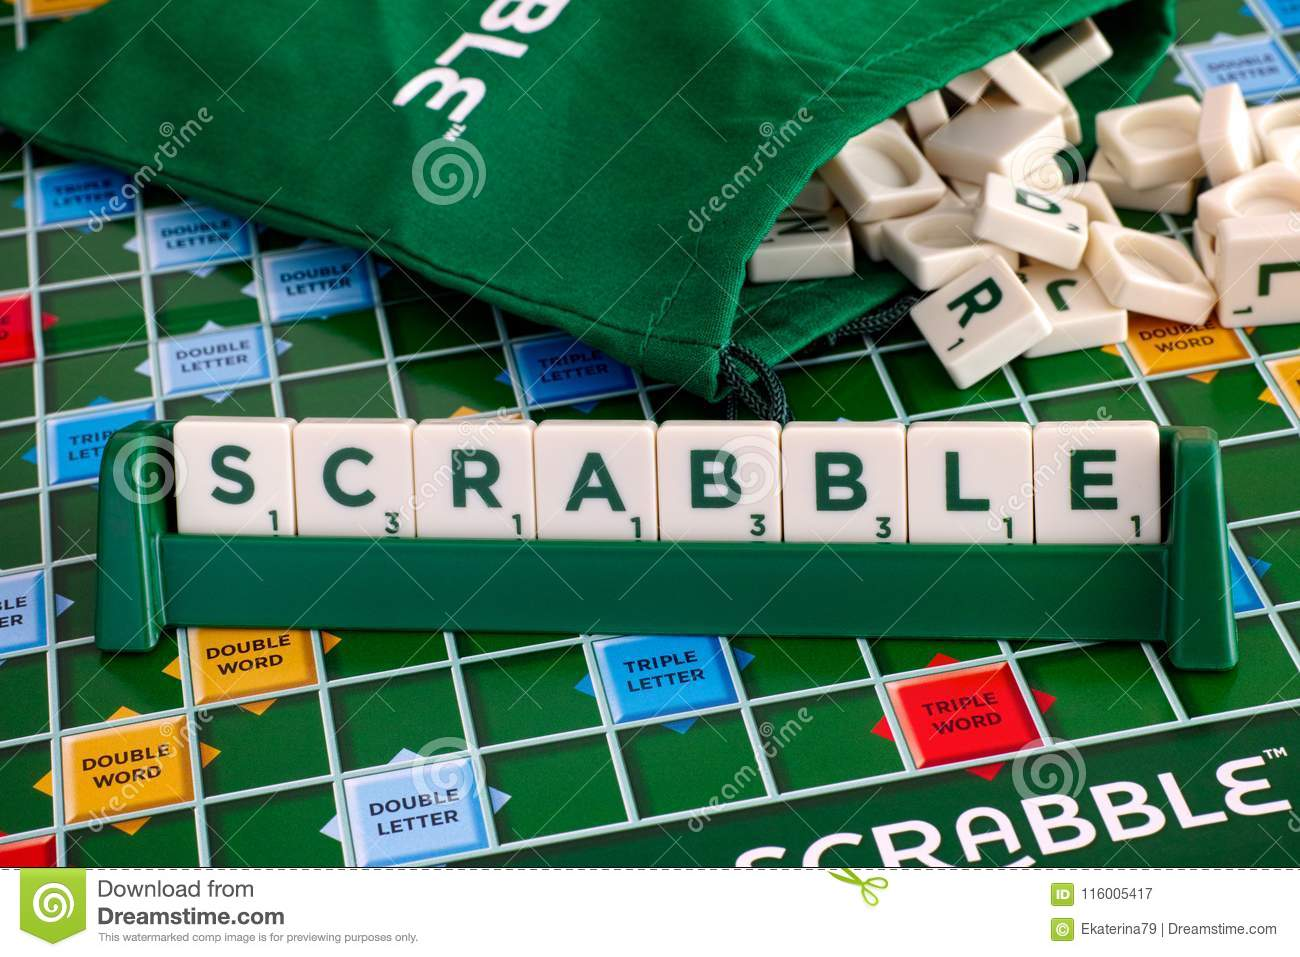 https www dreamstime com tambov russian federation may scrabble board game word scrabble letter tiles tile rack gameboard drawstring letter image116005417